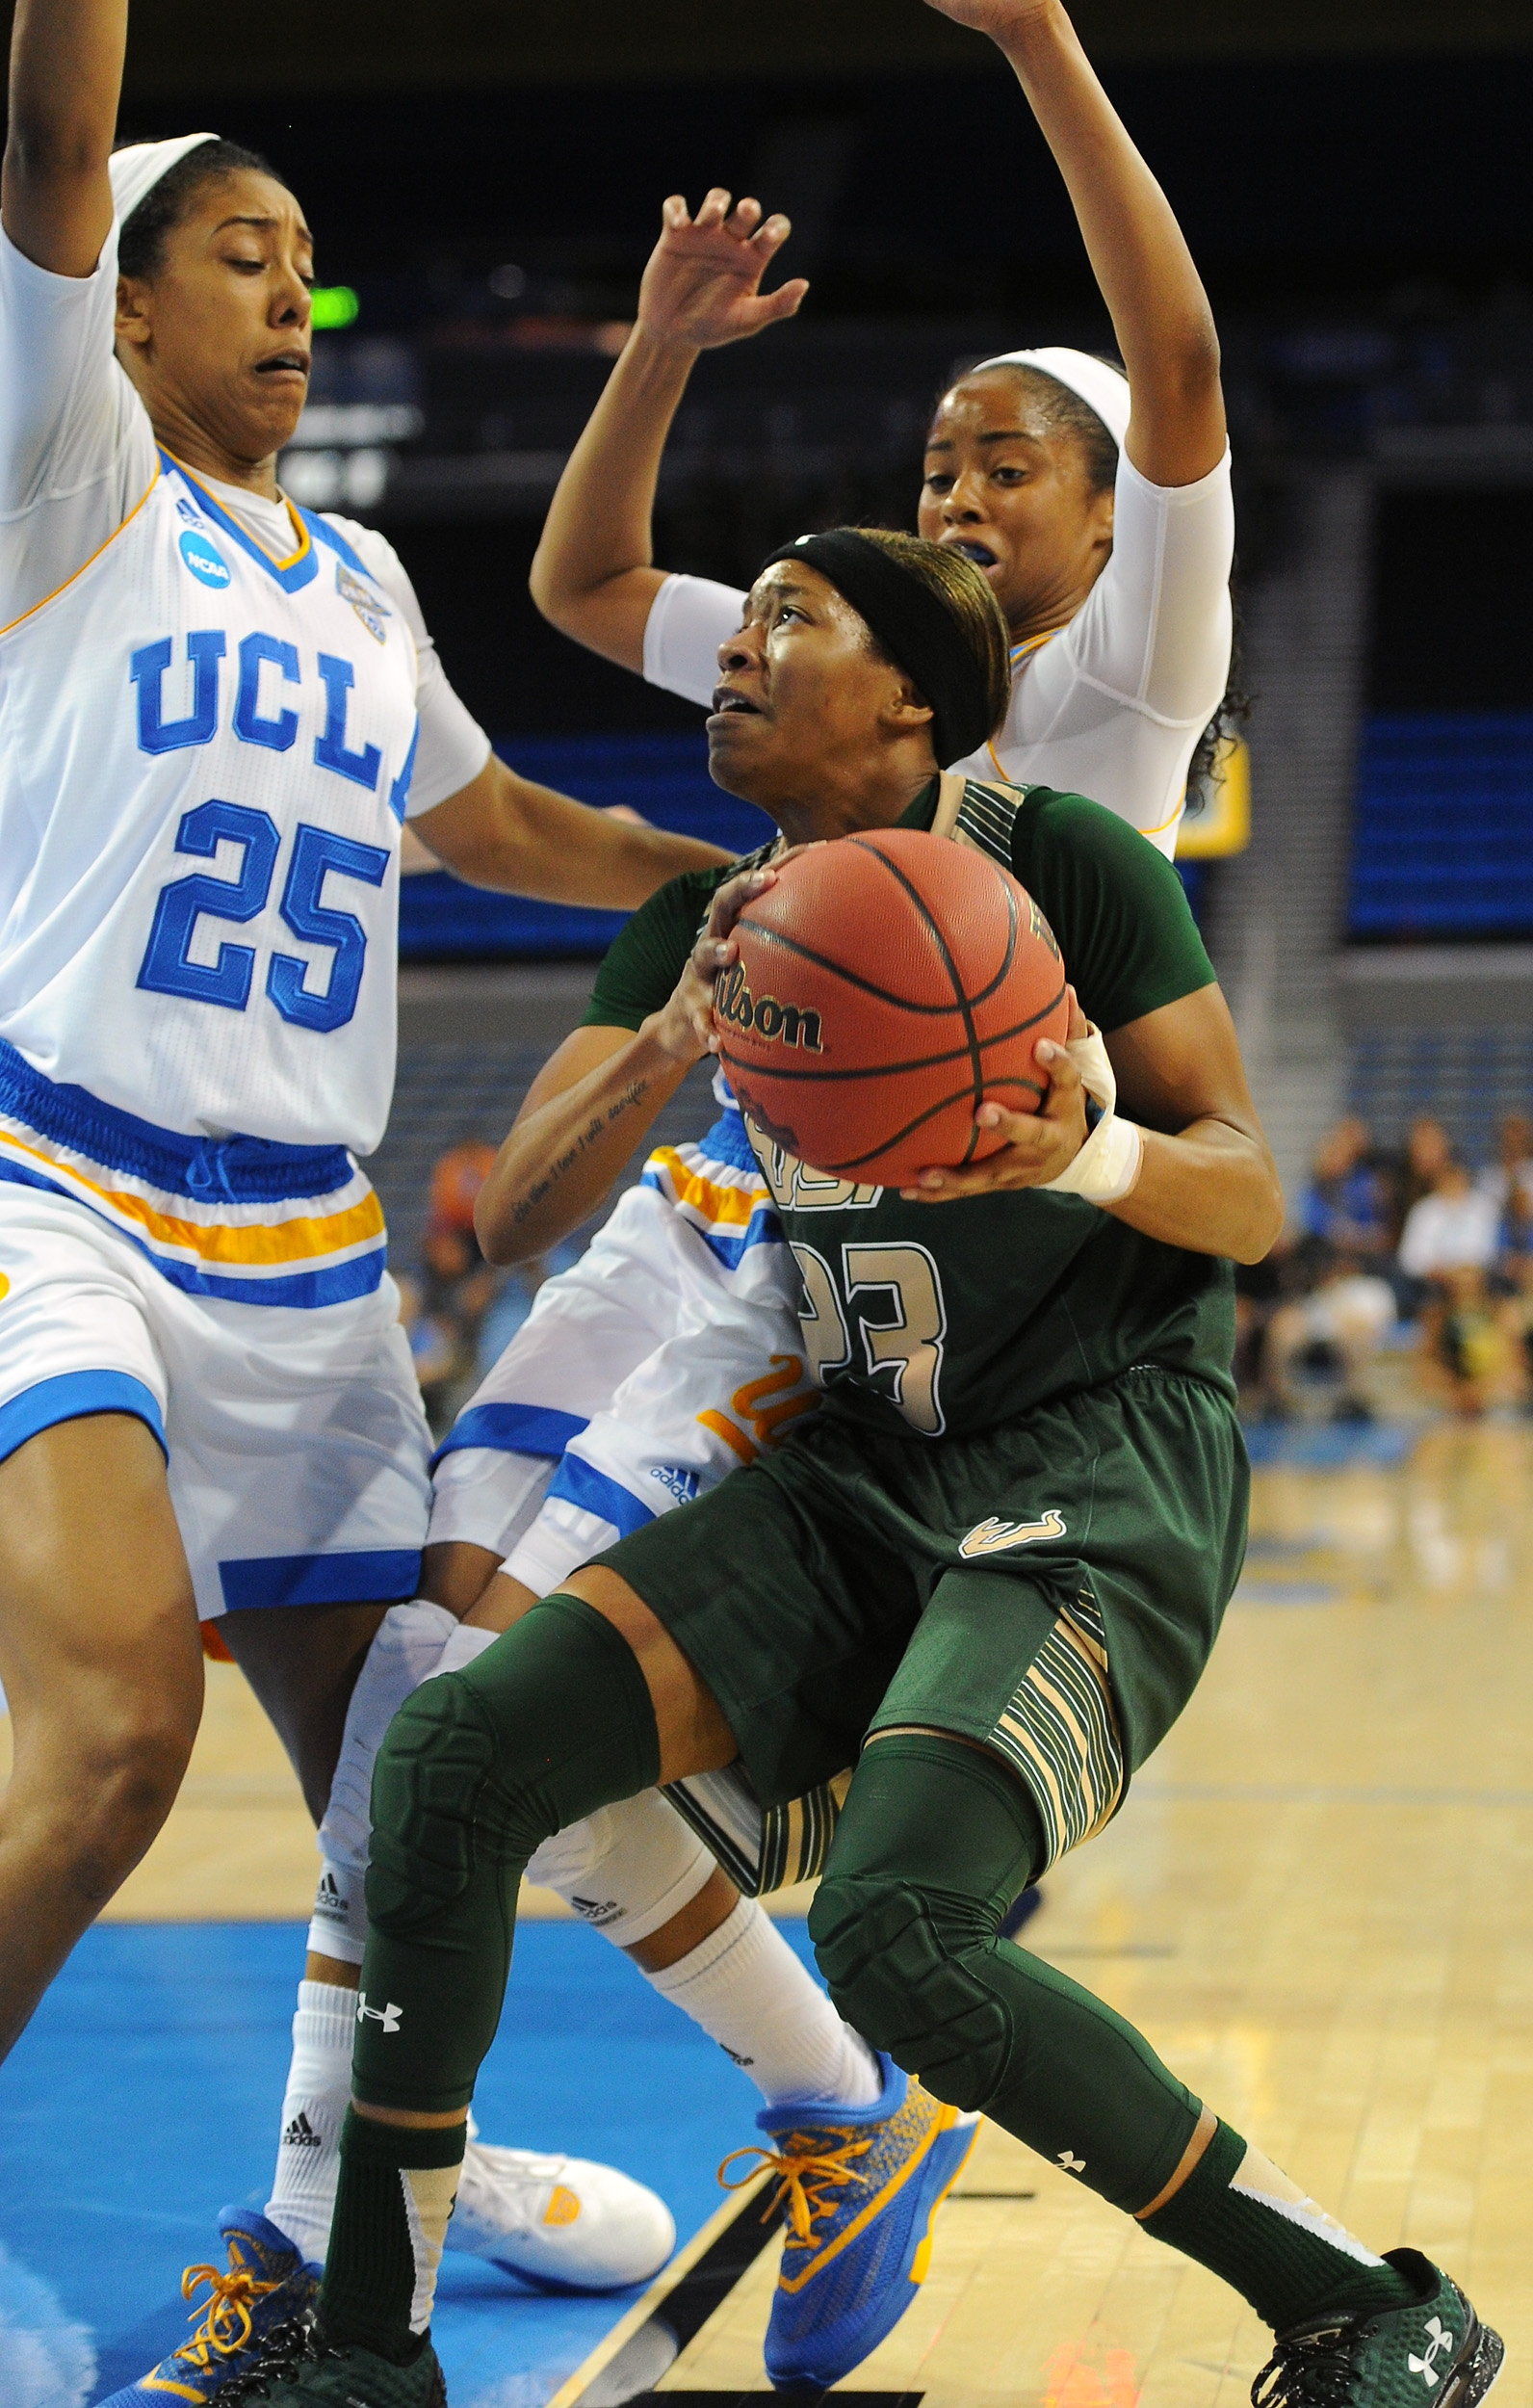 South Florida's Nancy Warioba, right, runs into the double team of UCLA's Monique Billings (25) and Jordin Canada during a second-round women's college basketball game in the NCAA Tournament in Los Angeles, Monday, March 21, 2016. (AP Photo/Michael Owen B